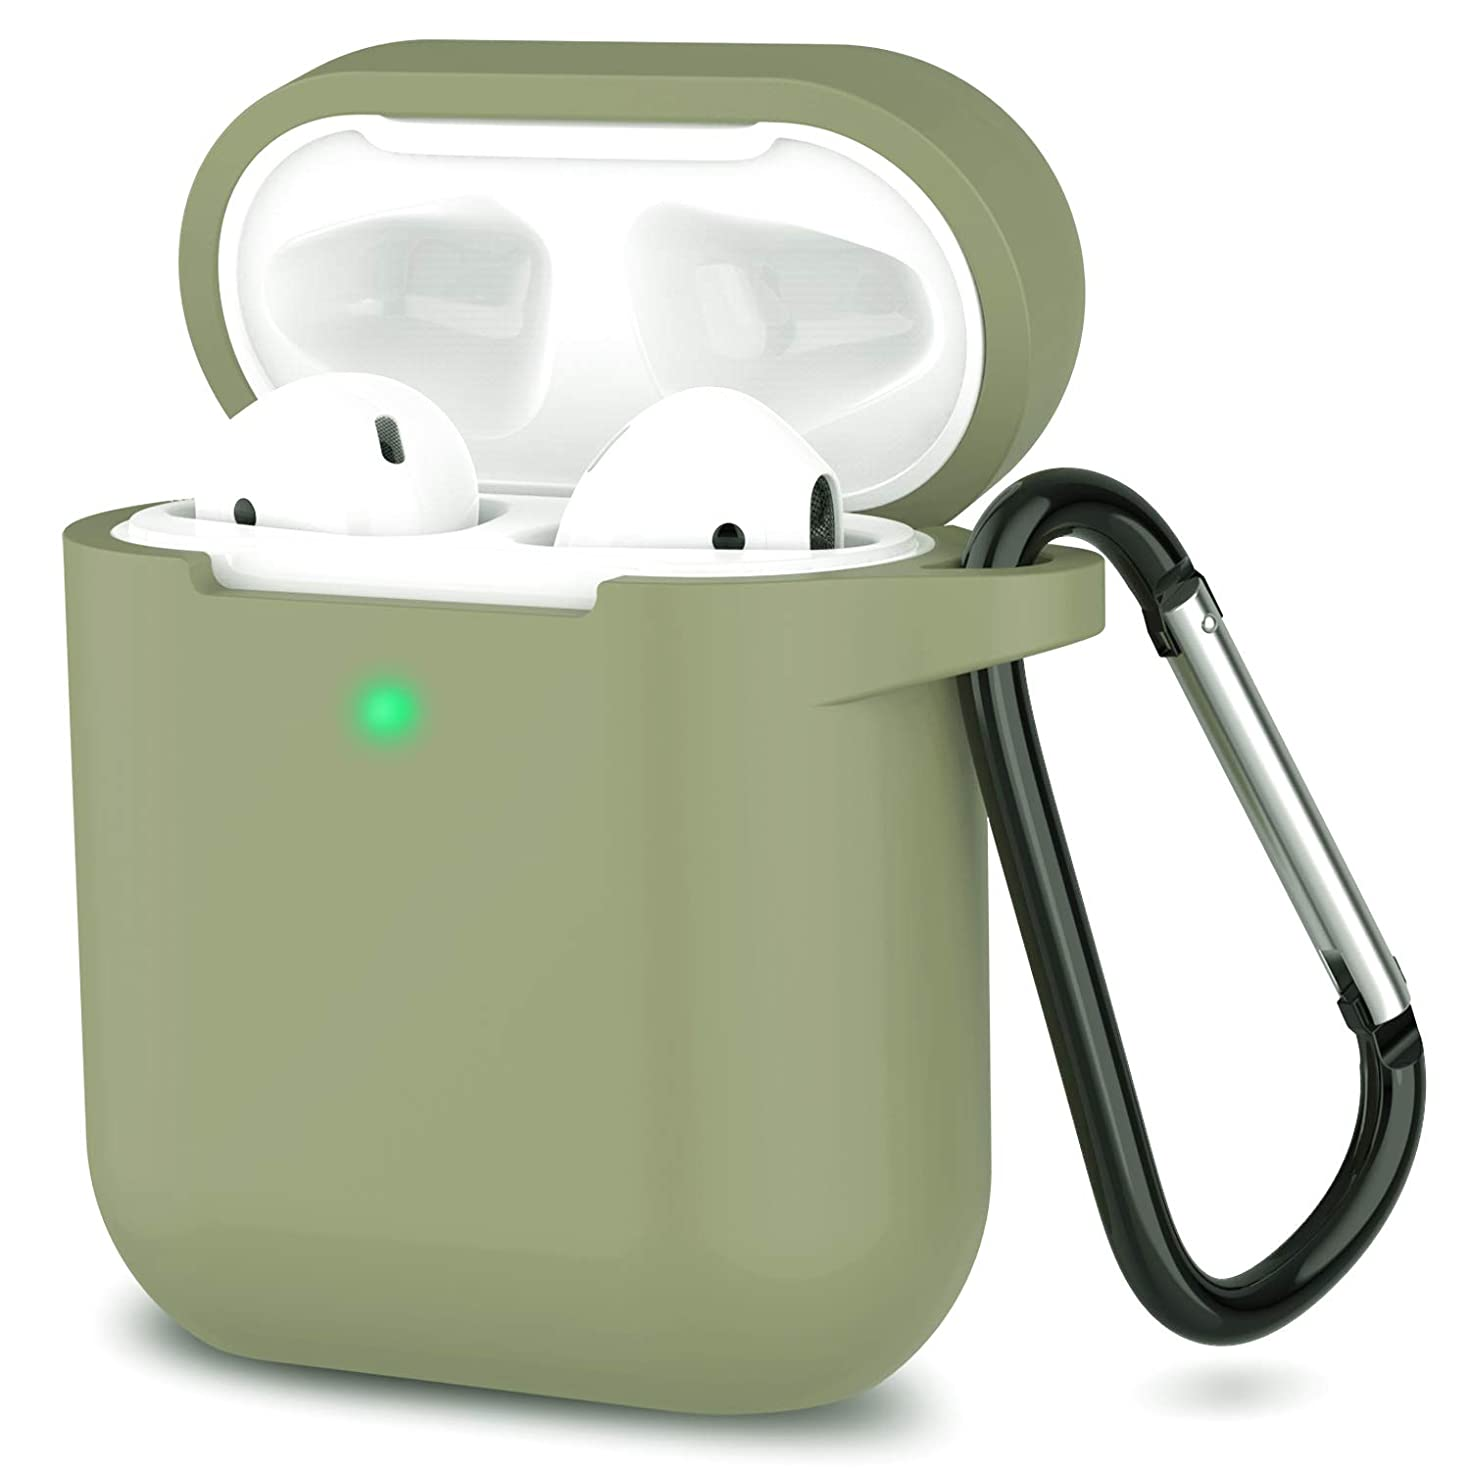 Newest 2019 AirPods Case,Full Protective Silicone AirPods Accessories Cover Compatiable with Apple AirPods Wireless Charging Case[Front LED Visible]-Army Green